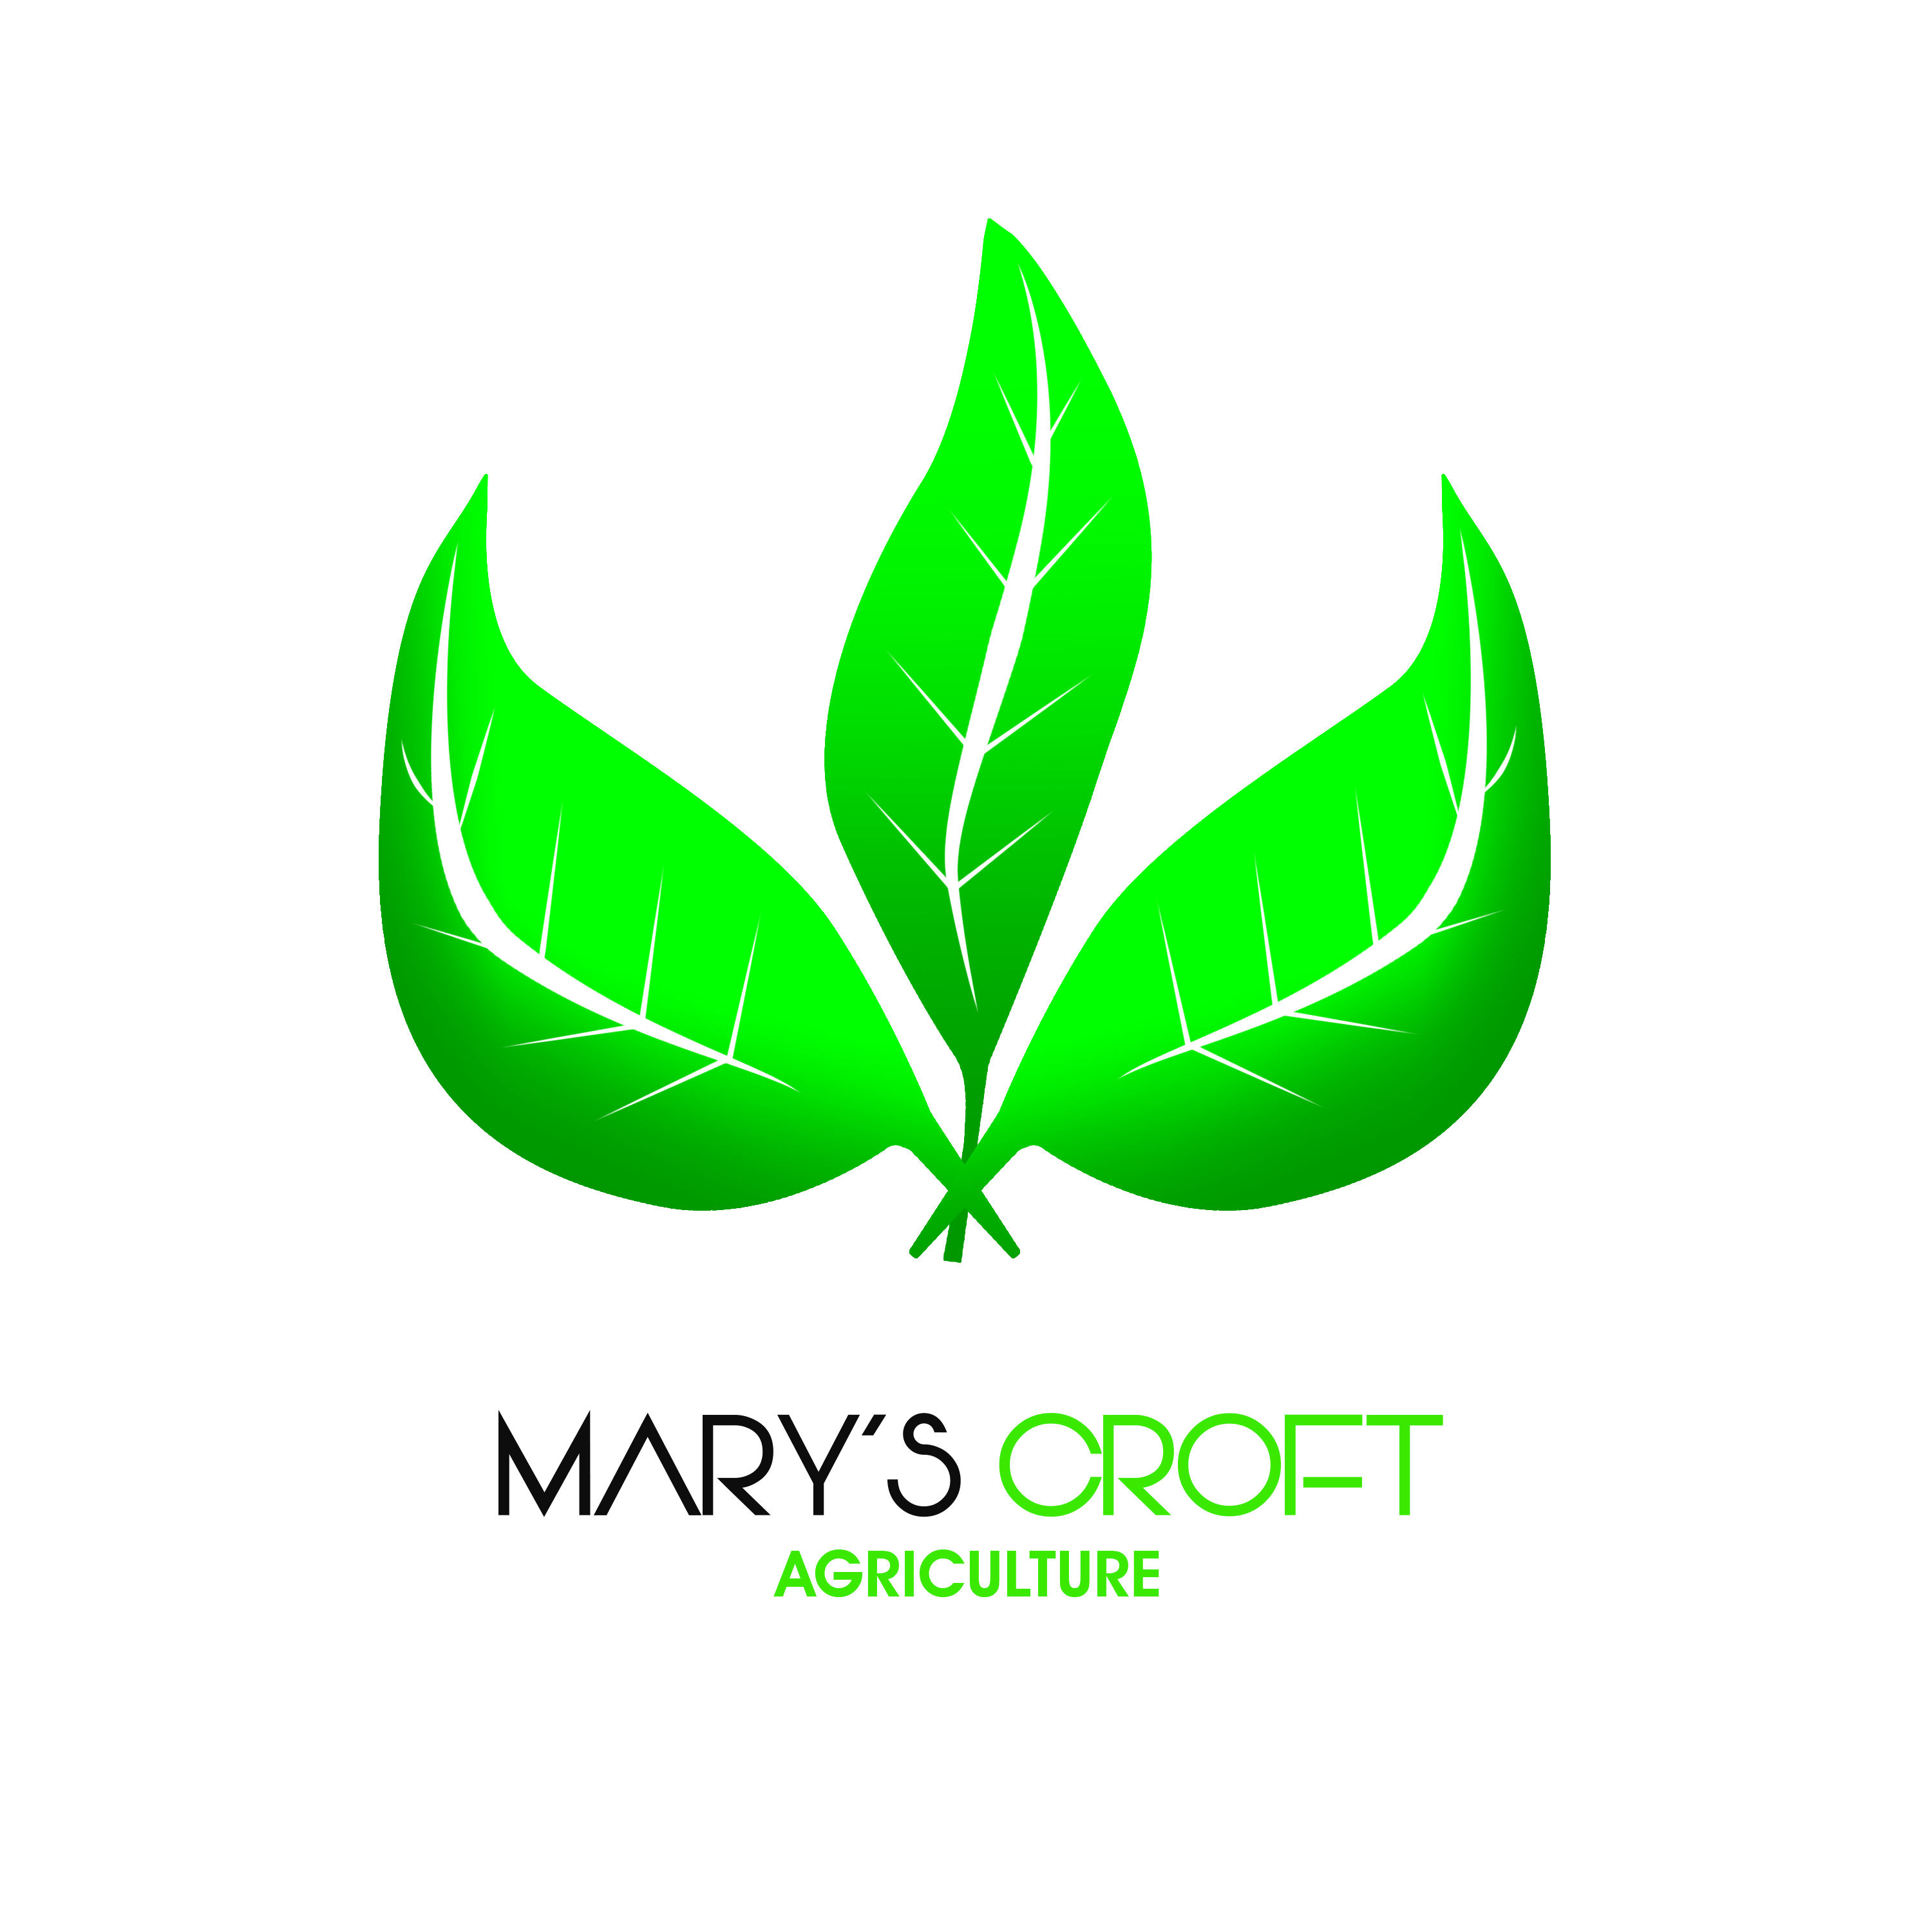 Mary's Croft